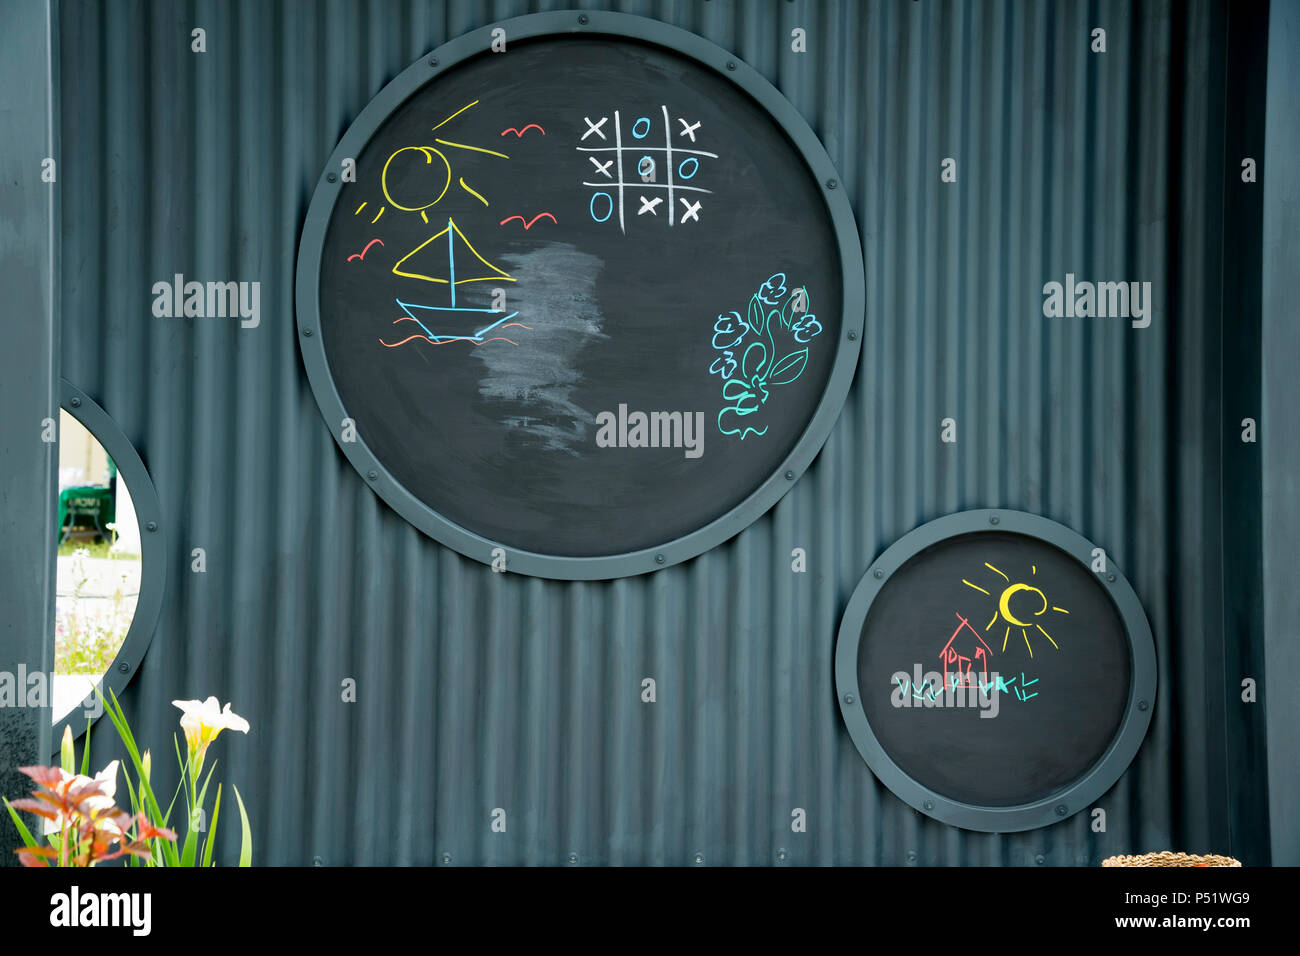 Close-up of circular blackboards in garden play area - CCLA : A Family Garden, RHS Chatsworth Flower Show, Chatsworth House, Derbyshire, England, UK. - Stock Image